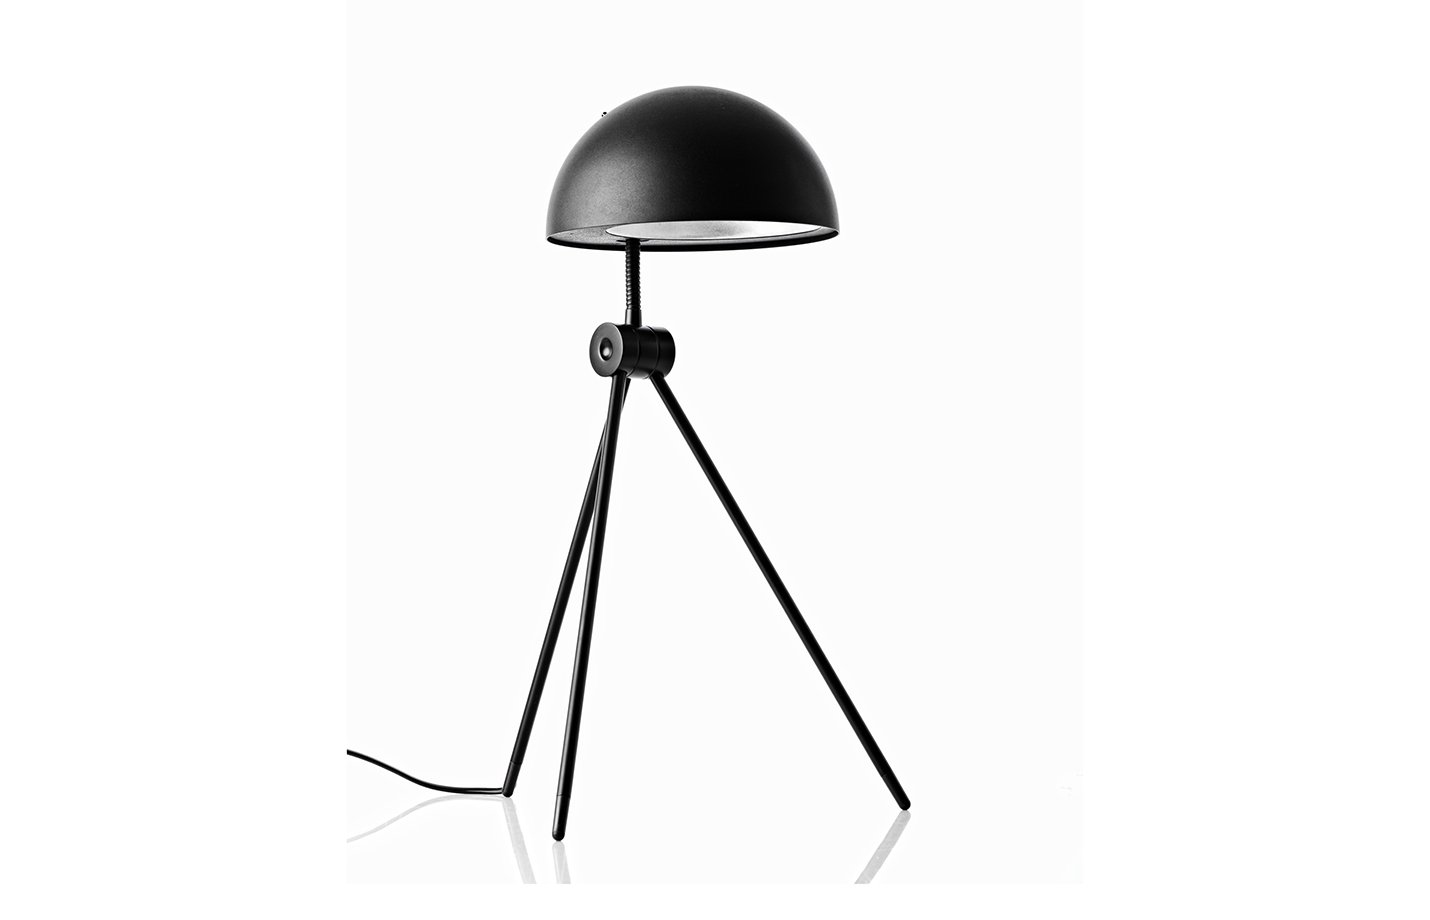 Radon table lamp – Black